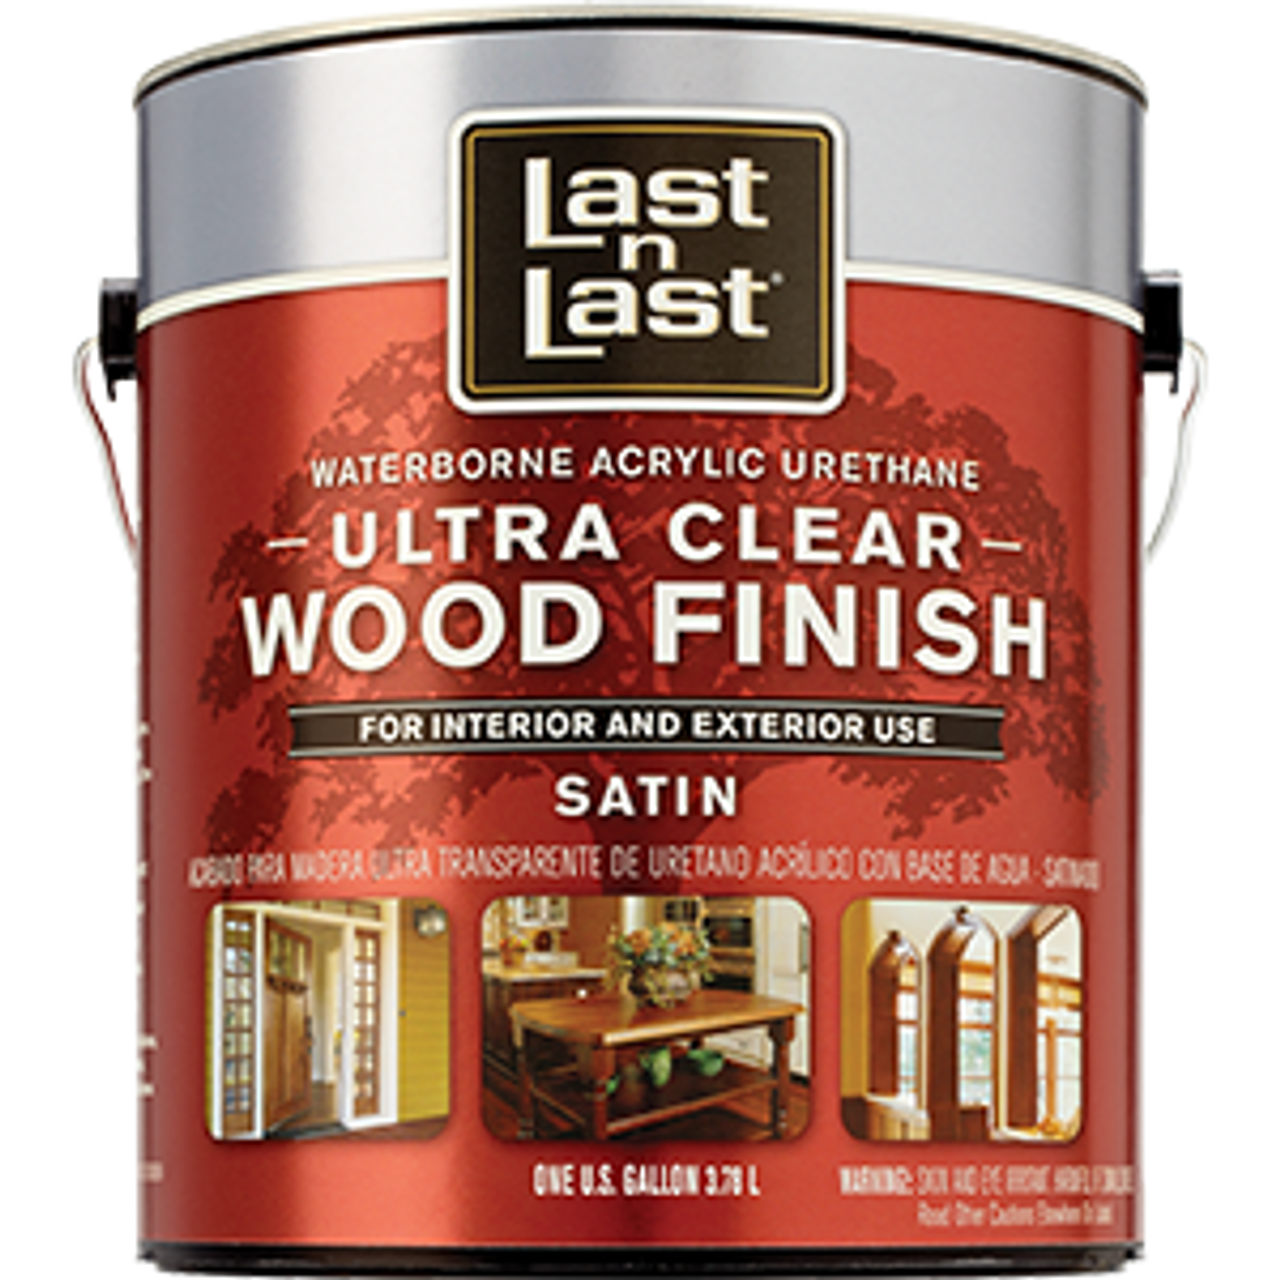 ABSOLUTE 13101 1G SATIN ULTRA CLEAR LAST N LAST WATERBORNE WOOD FINISH 275 VOC